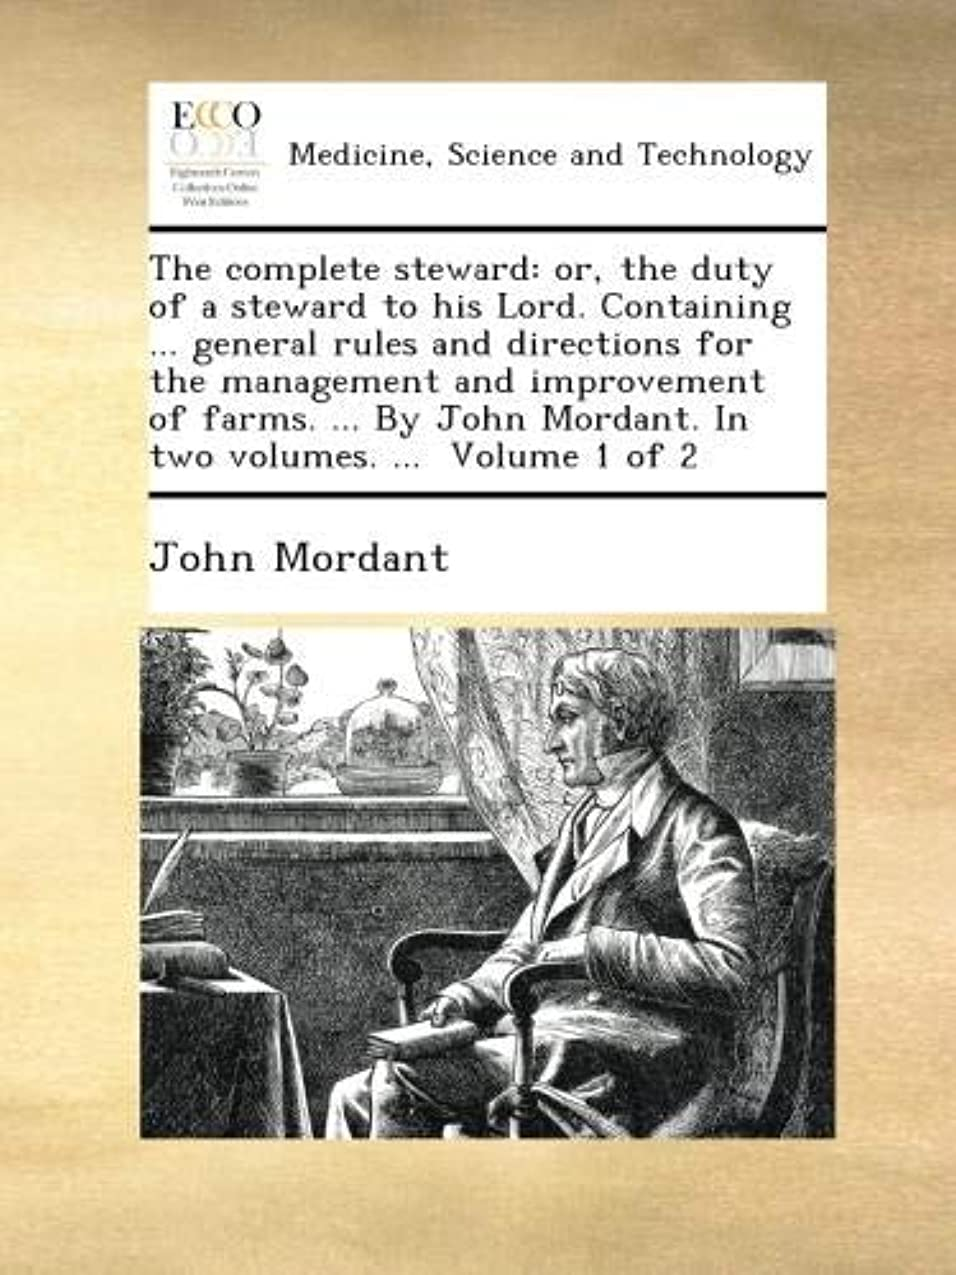 The complete steward: or, the duty of a steward to his Lord. Containing ... general rules and directions for the management and improvement of farms. ... By John Mordant. In two volumes. ...  Volume 1 of 2